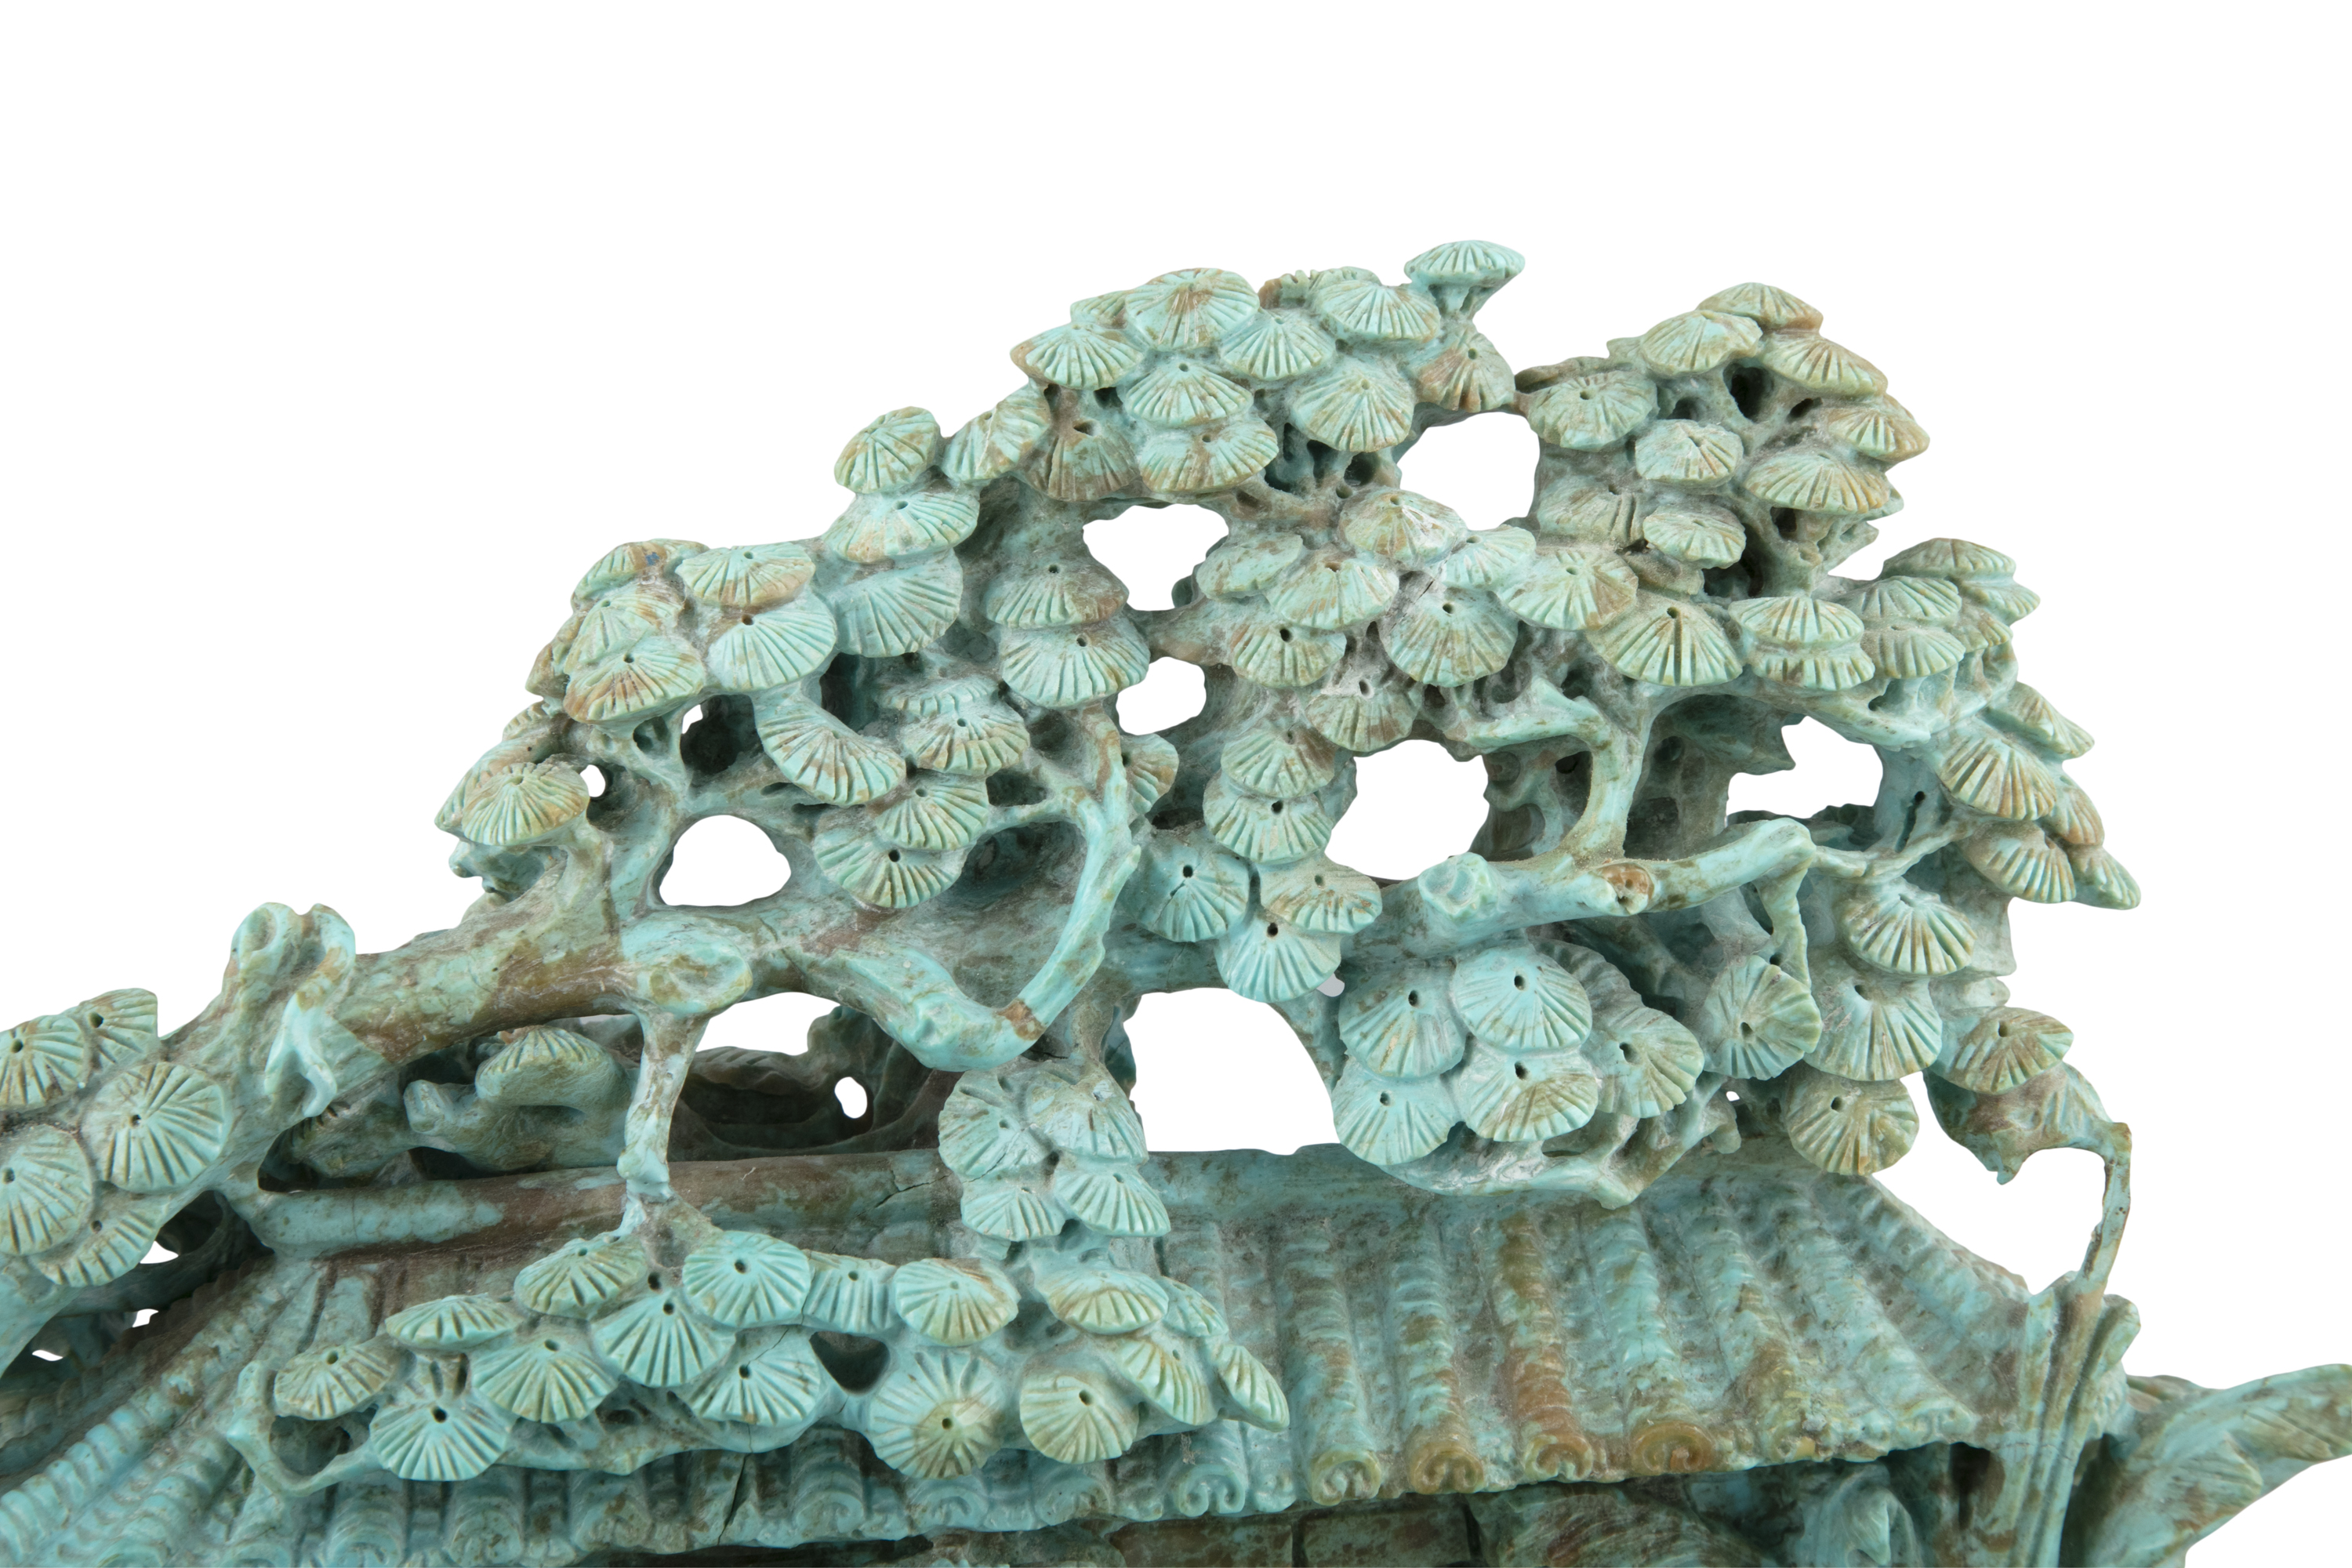 A LARGE AND UNUSUAL TURQUOISE MATRIX LANDSCAPE China, 20th century An important and large group - Image 12 of 22